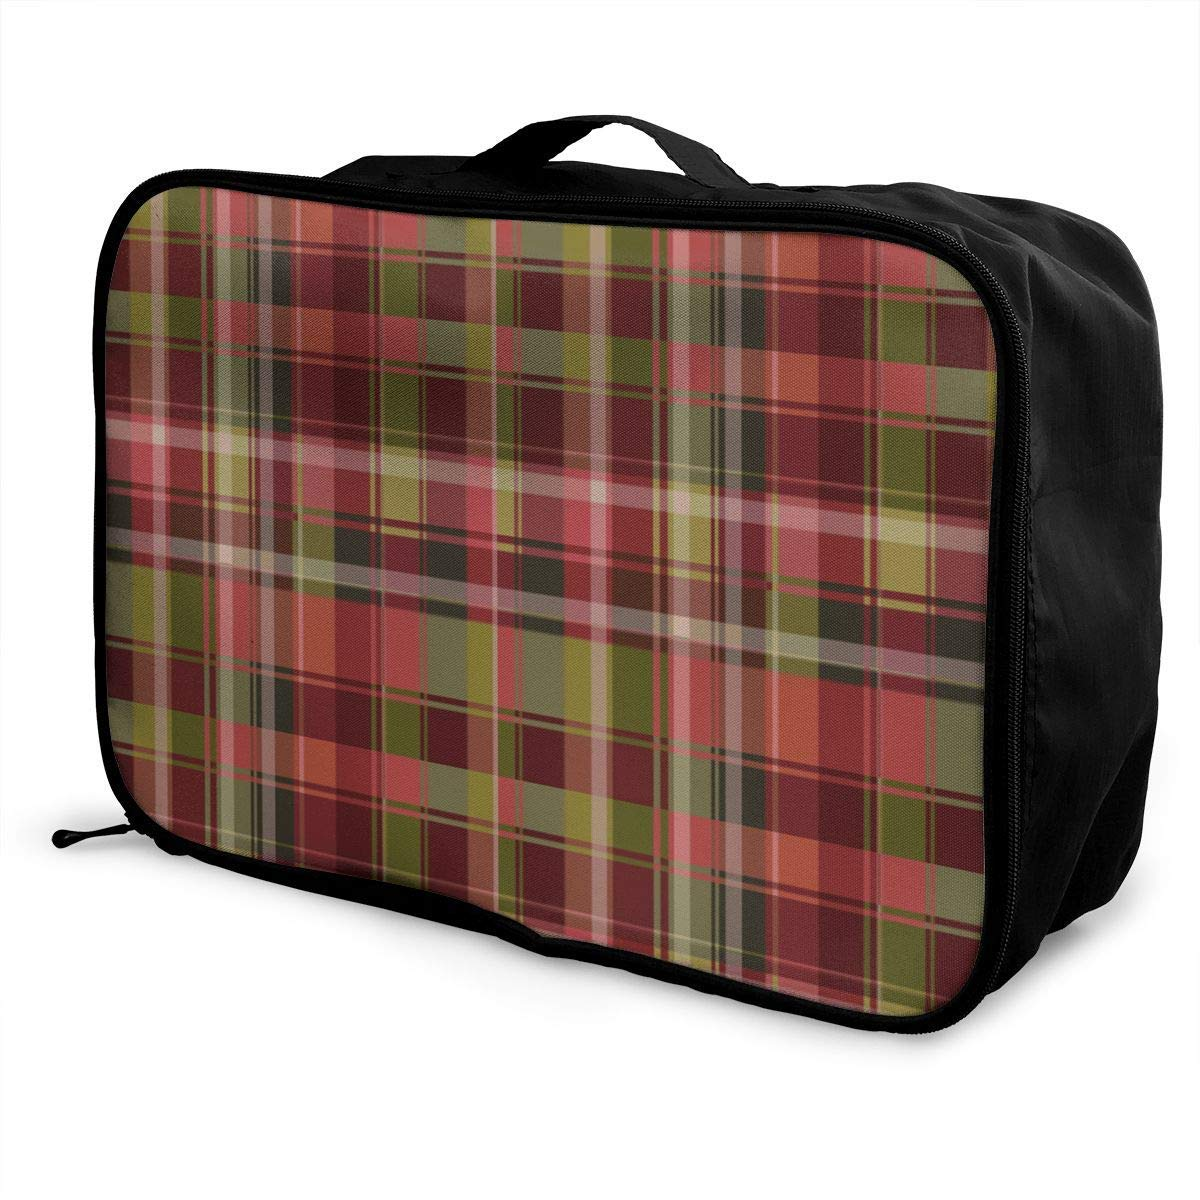 Portable Luggage Duffel Bag Tartan Pink Plaid Travel Bags Carry-on In Trolley Handle